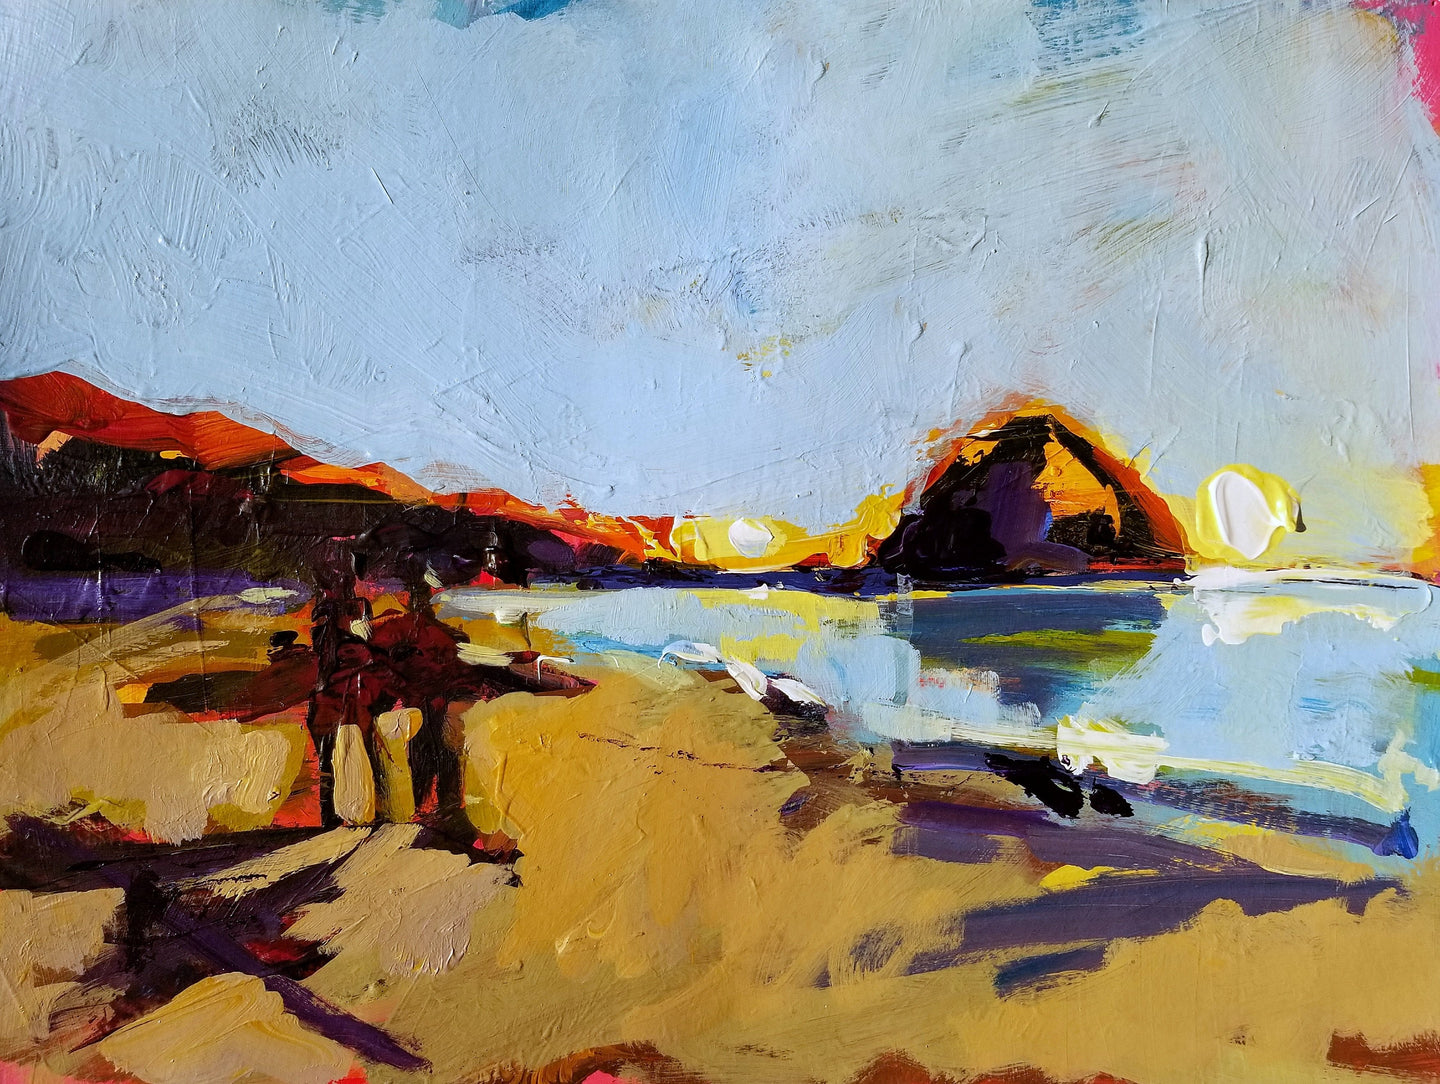 Surf at the Rock - Morro Bay | 11x14 | Original Acrylic on Paper